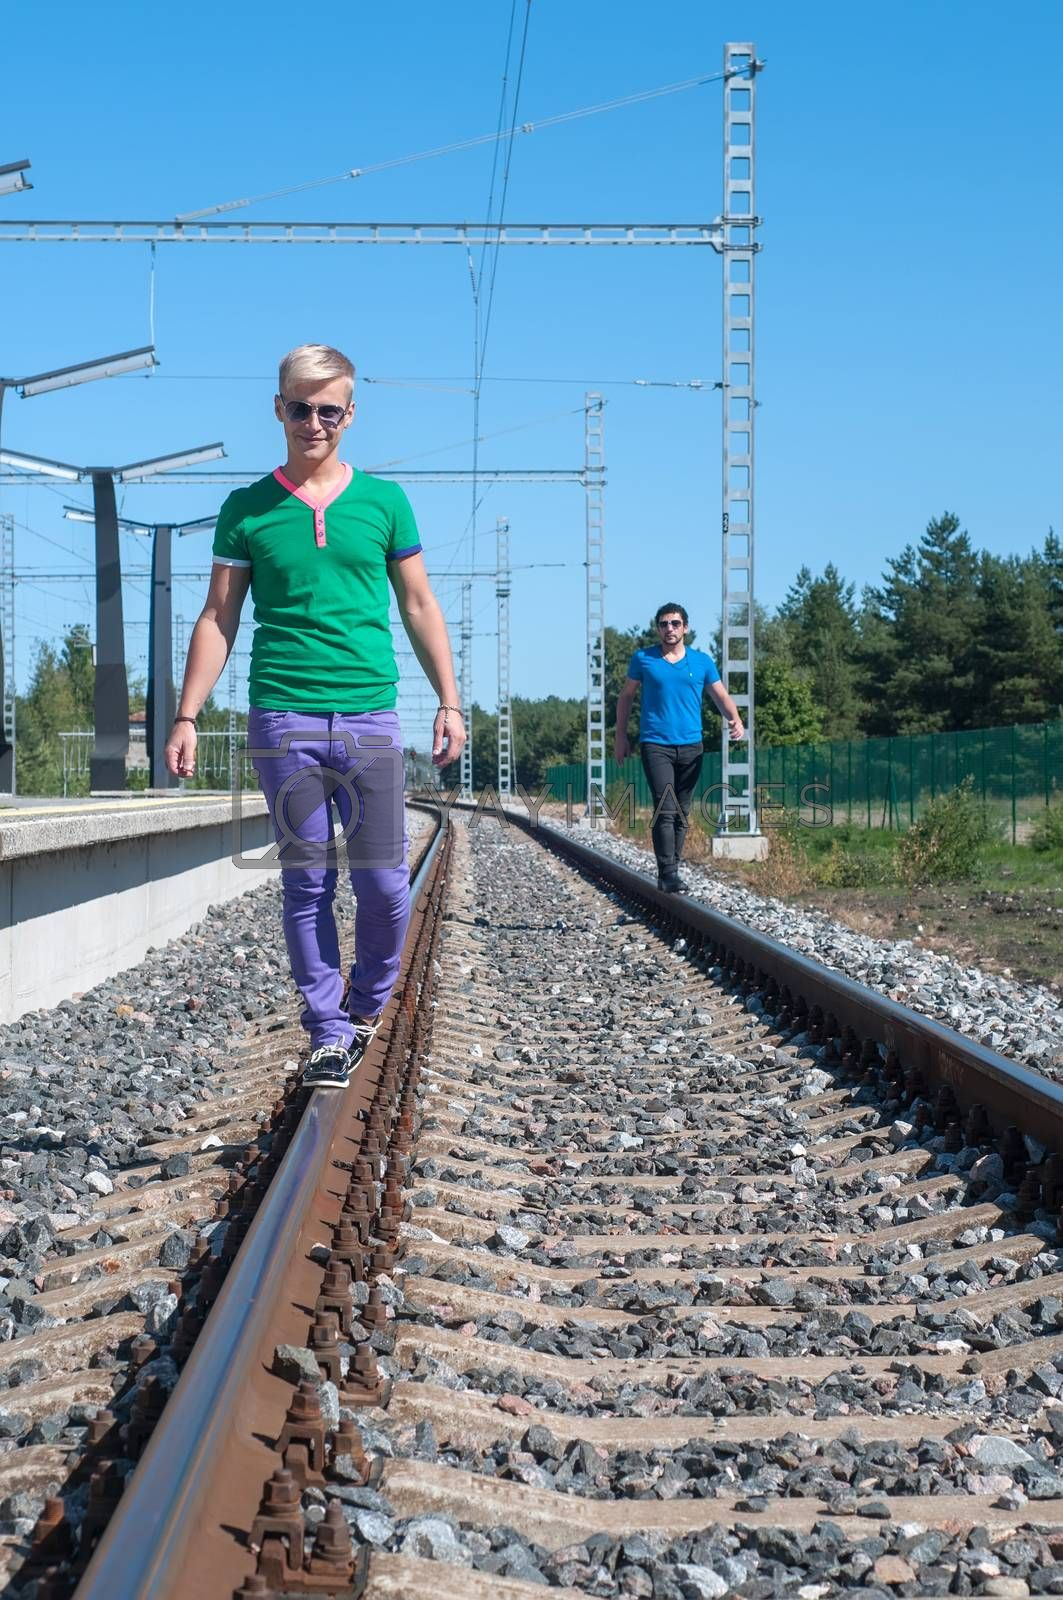 Two young men walking on the rail track by anytka